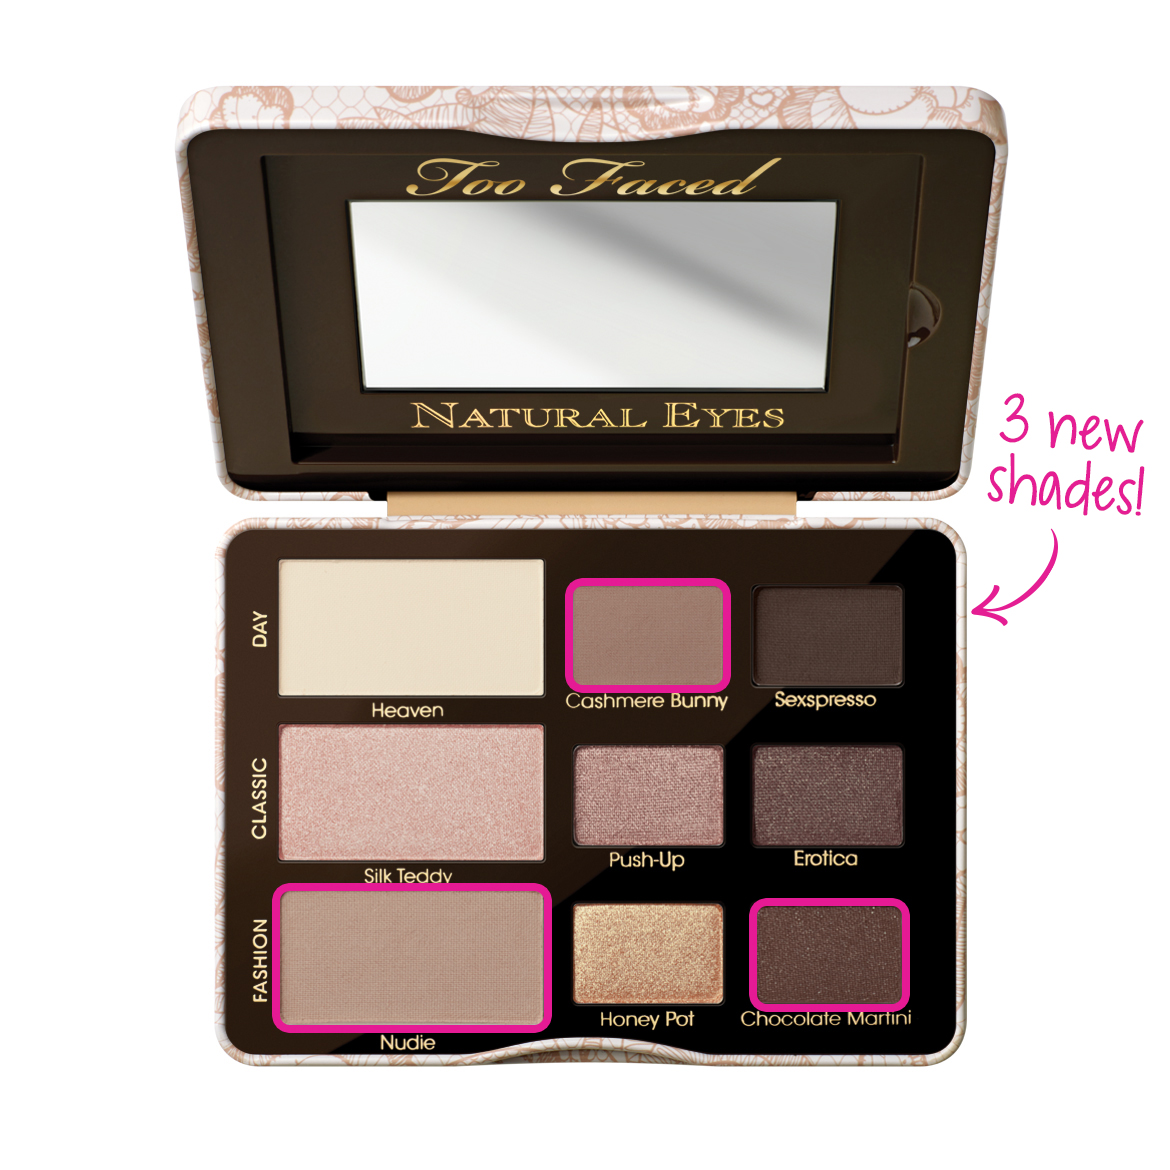 natural eye neutral eyeshadow palette too faced too faced. Black Bedroom Furniture Sets. Home Design Ideas